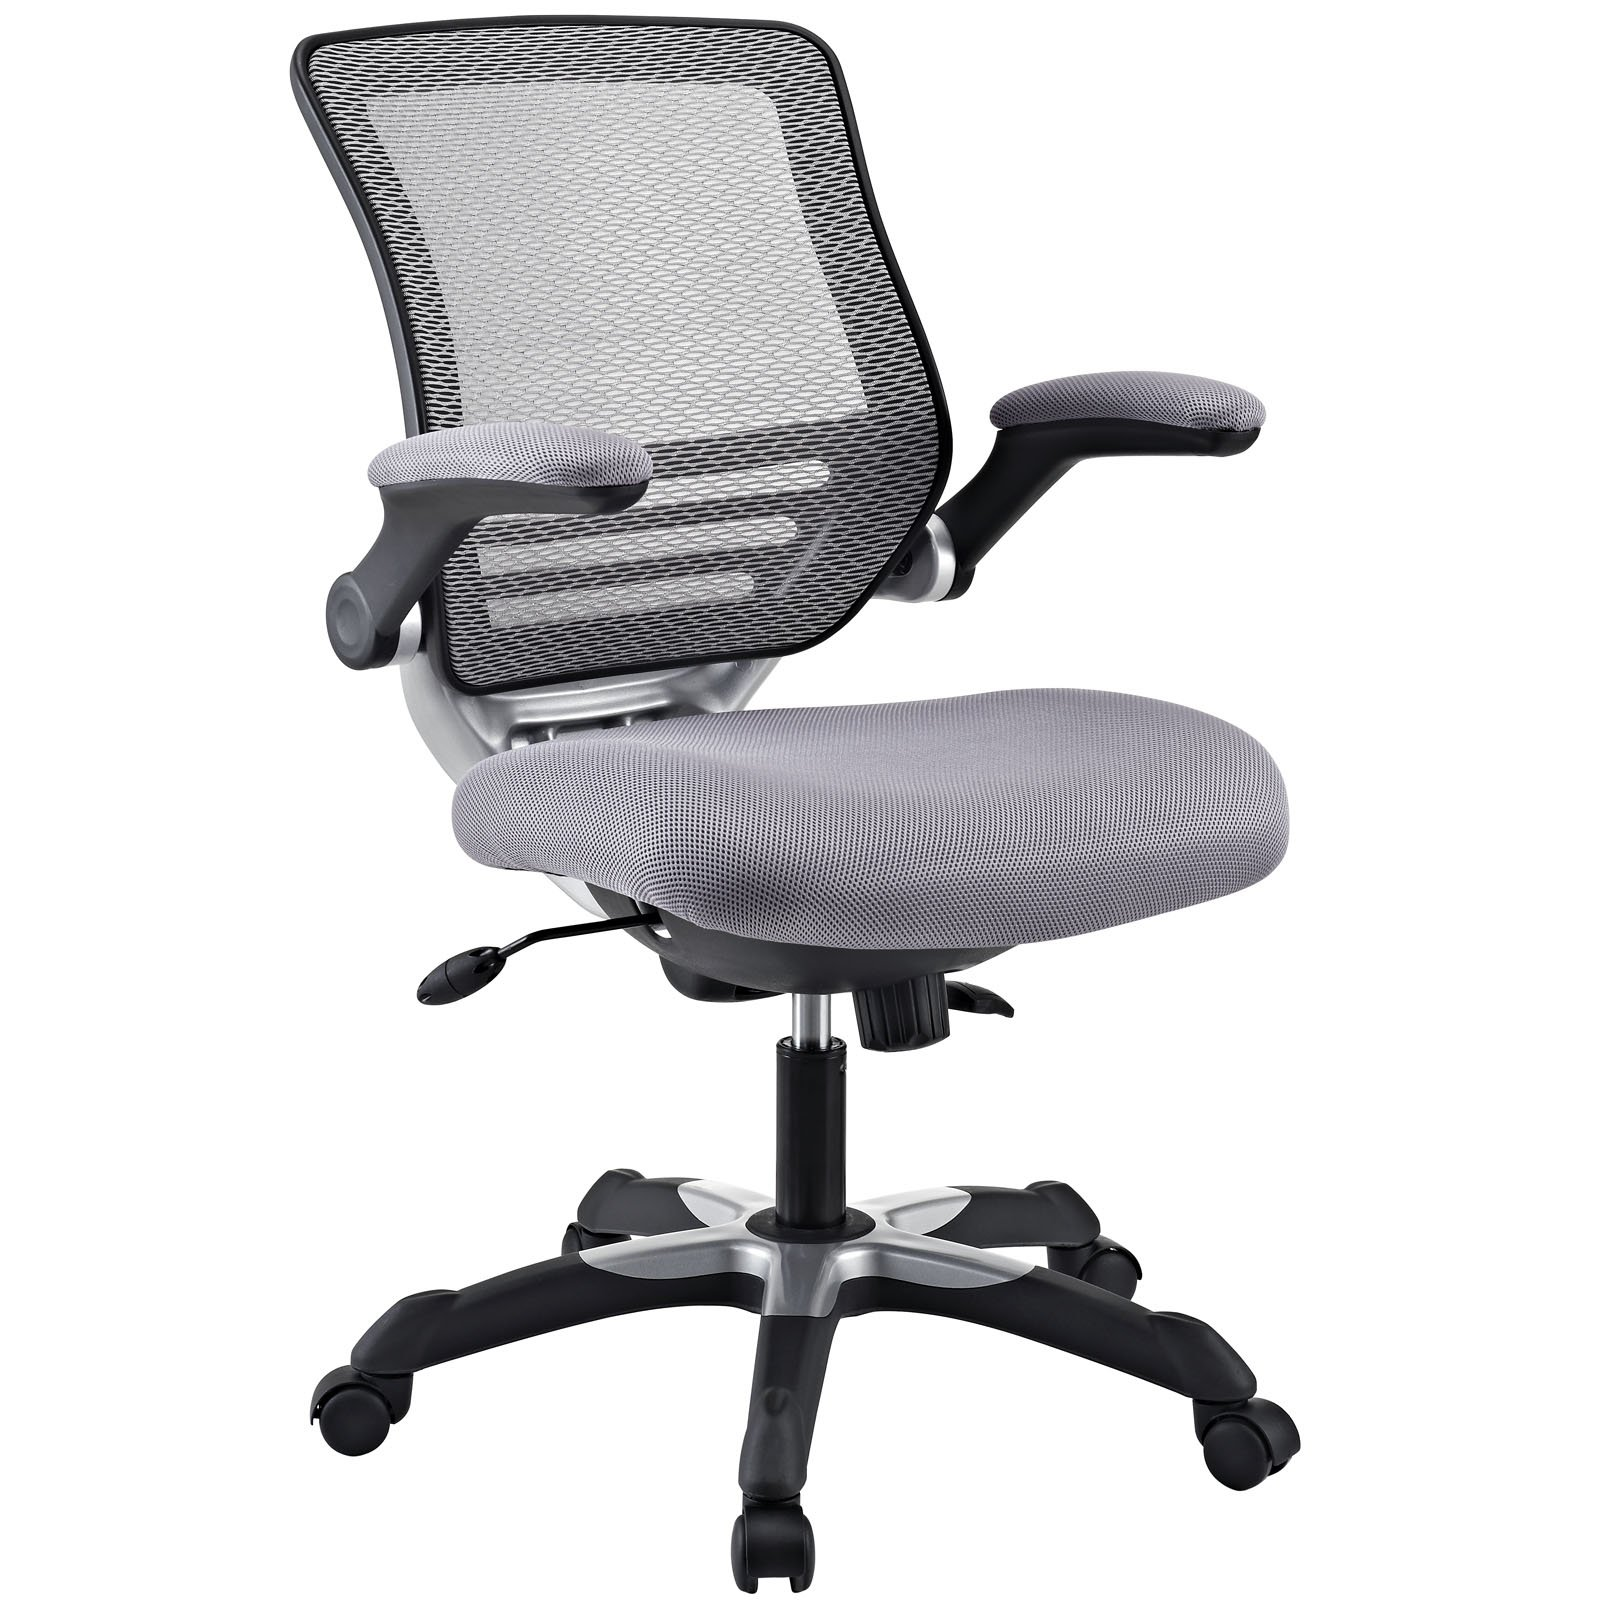 Modway Edge Mesh Back and Gray Mesh Seat Office Chair With Flip-Up Arms - Ergonomic Desk And Computer Chair by Modway